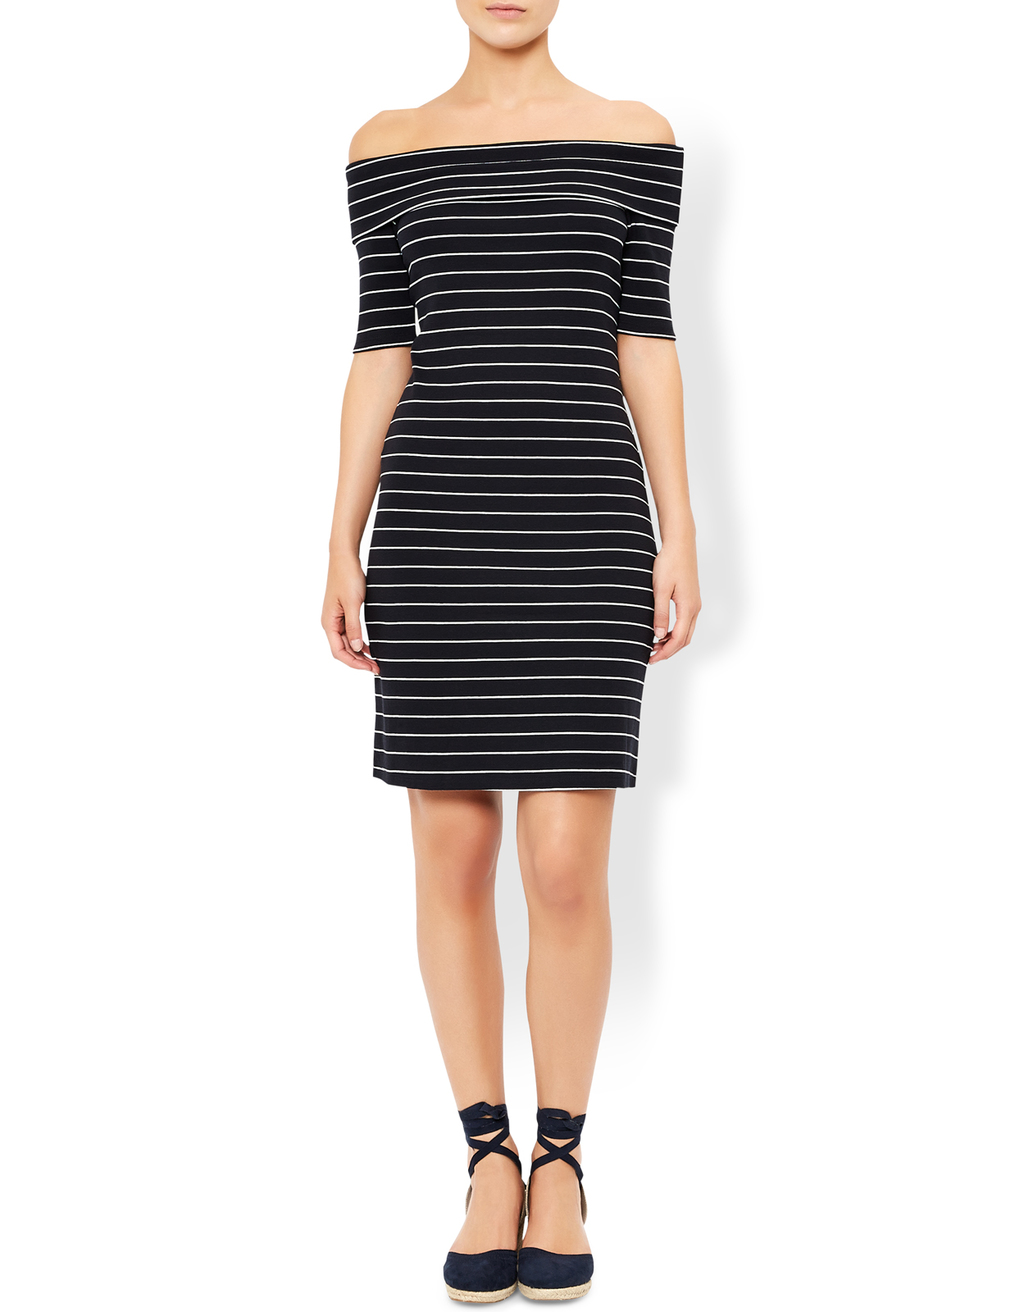 Bianca Stripe Bardot Dress - style: shift; neckline: off the shoulder; pattern: horizontal stripes; hip detail: draws attention to hips; secondary colour: white; predominant colour: black; occasions: casual; length: just above the knee; fit: body skimming; fibres: polyester/polyamide - stretch; sleeve length: half sleeve; sleeve style: standard; trends: monochrome; texture group: jersey - clingy; pattern type: fabric; pattern size: standard; season: a/w 2016; wardrobe: highlight